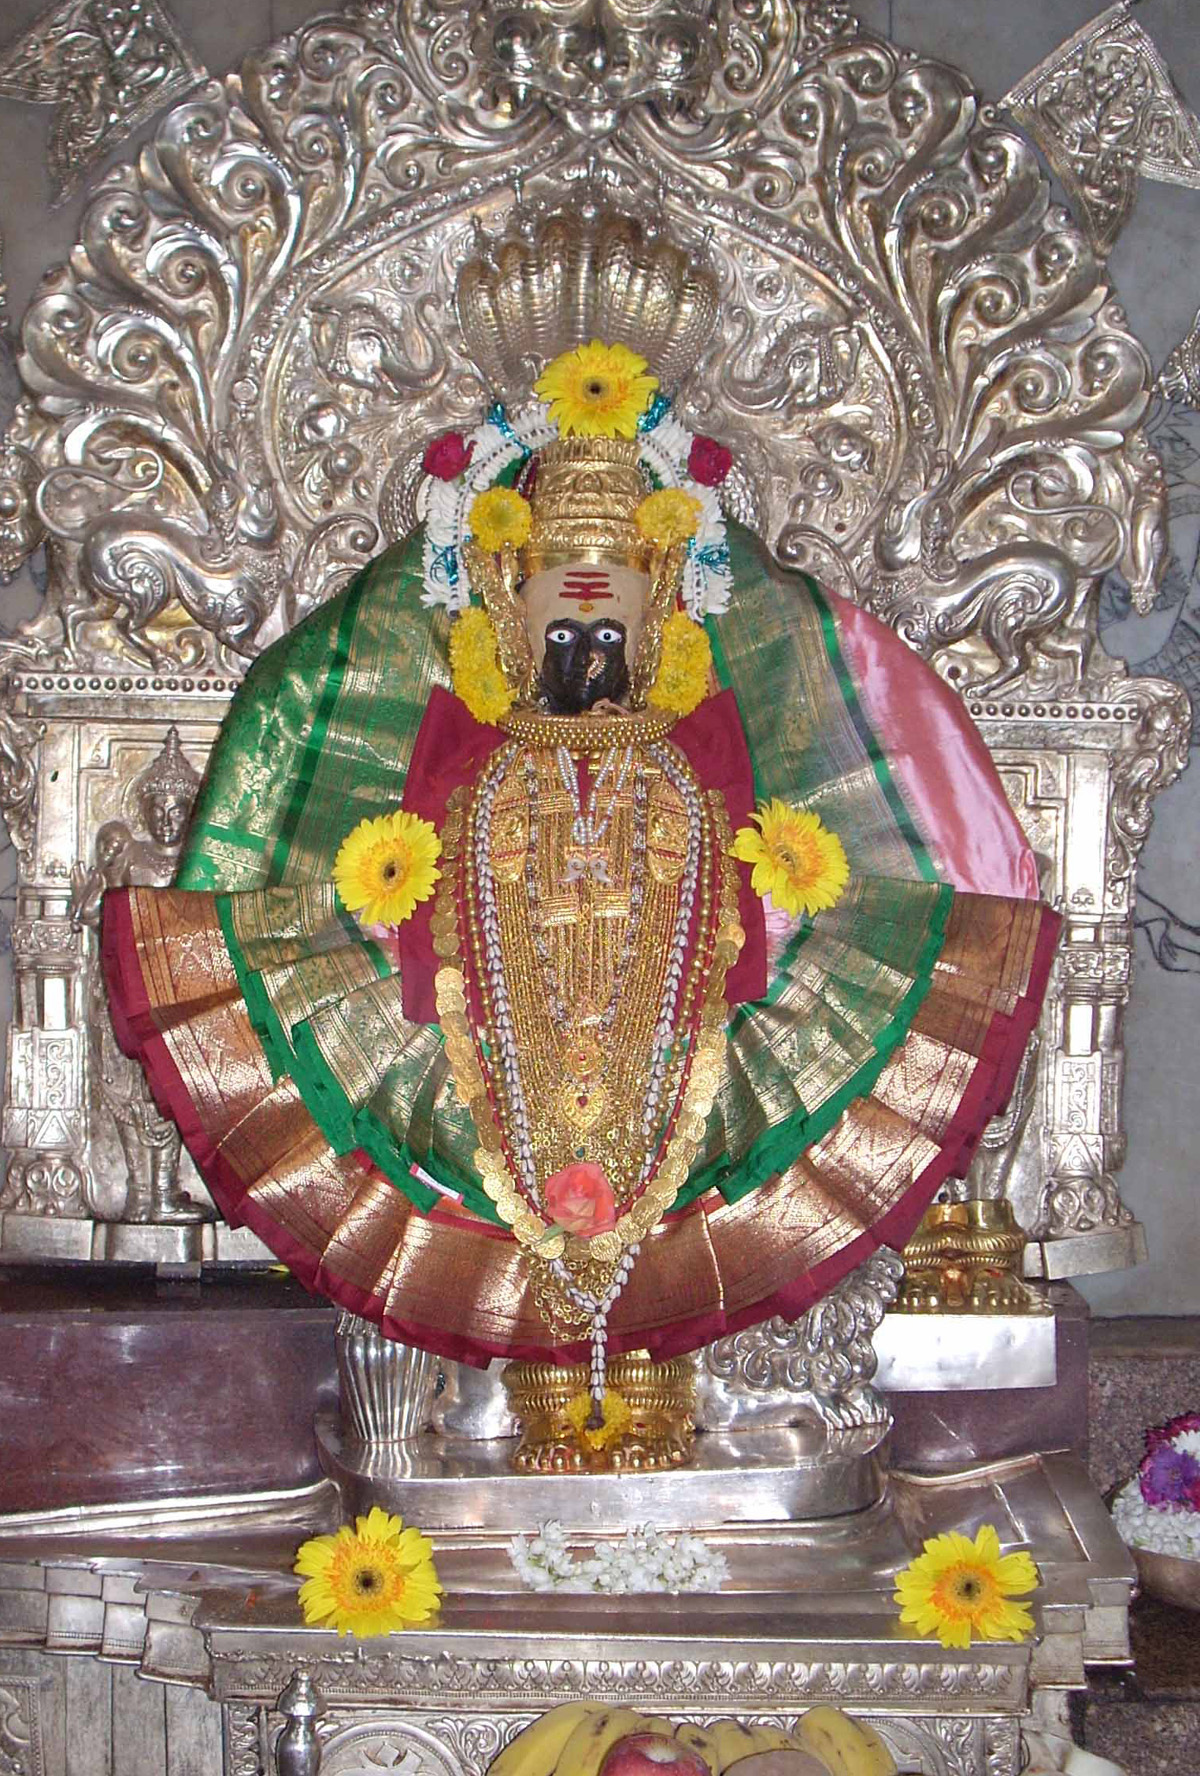 Somnath Photos - Featured Images of Somnath, Gir Somnath District Somnath temple photo download